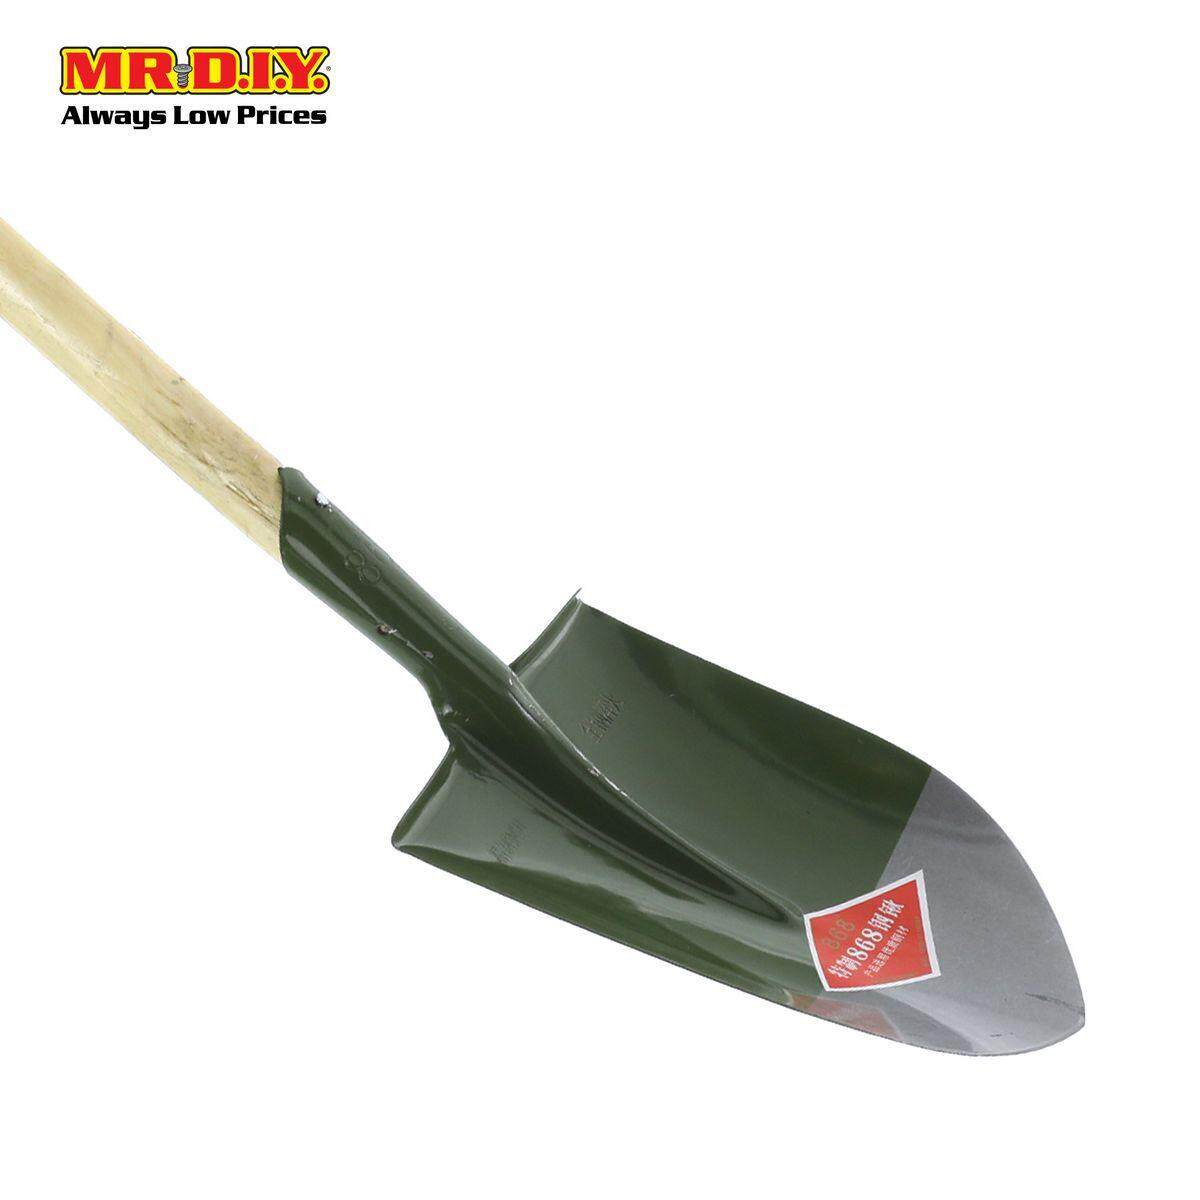 MR DIY Steel Round Point Shovel 103cm